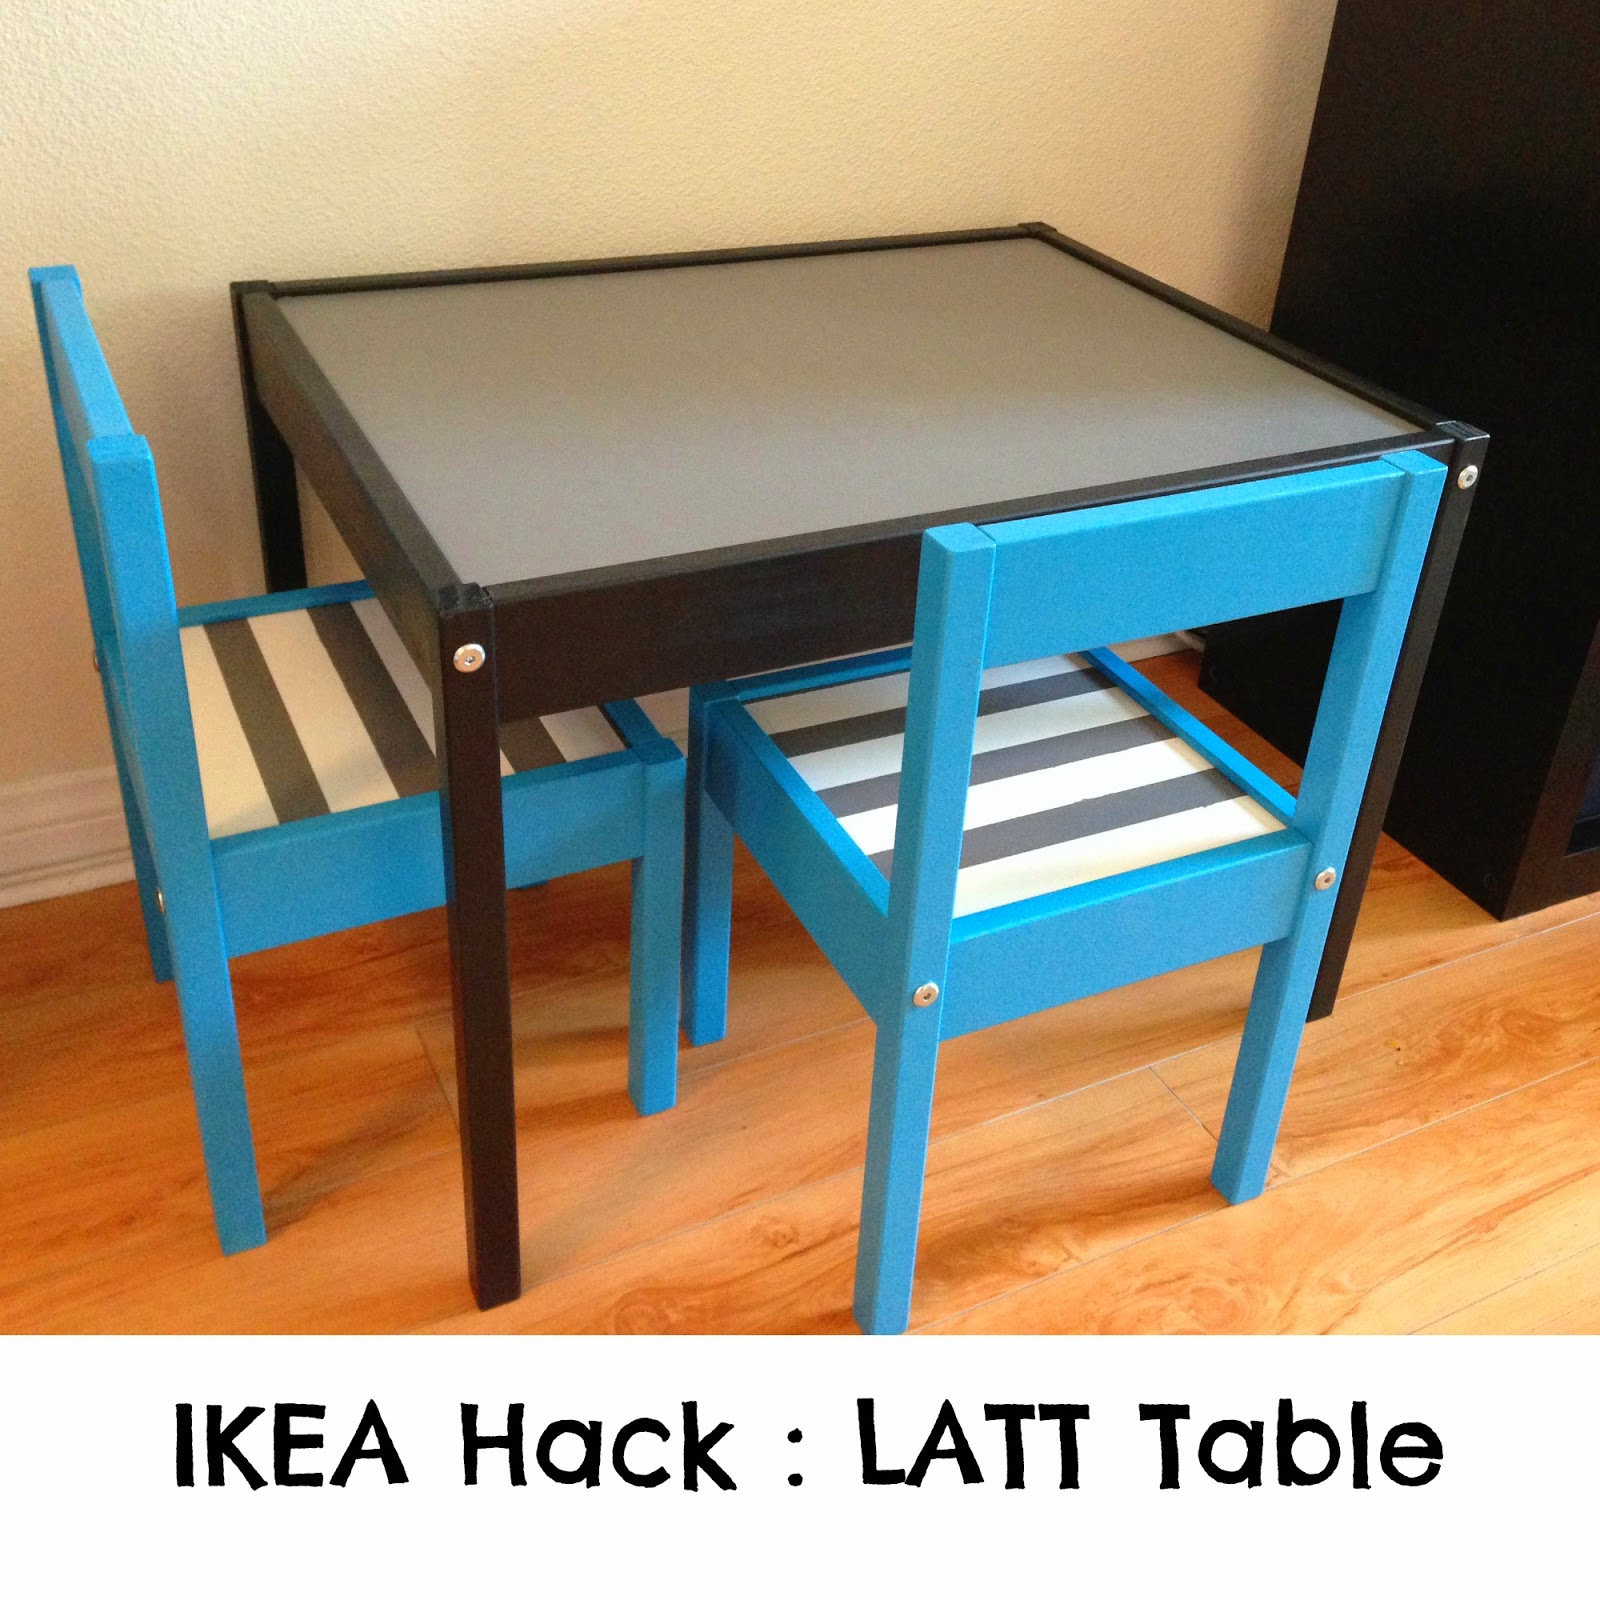 swing chair ikea malaysia covers for dogs uk outdoor table hack new sinnerlig 5 rad